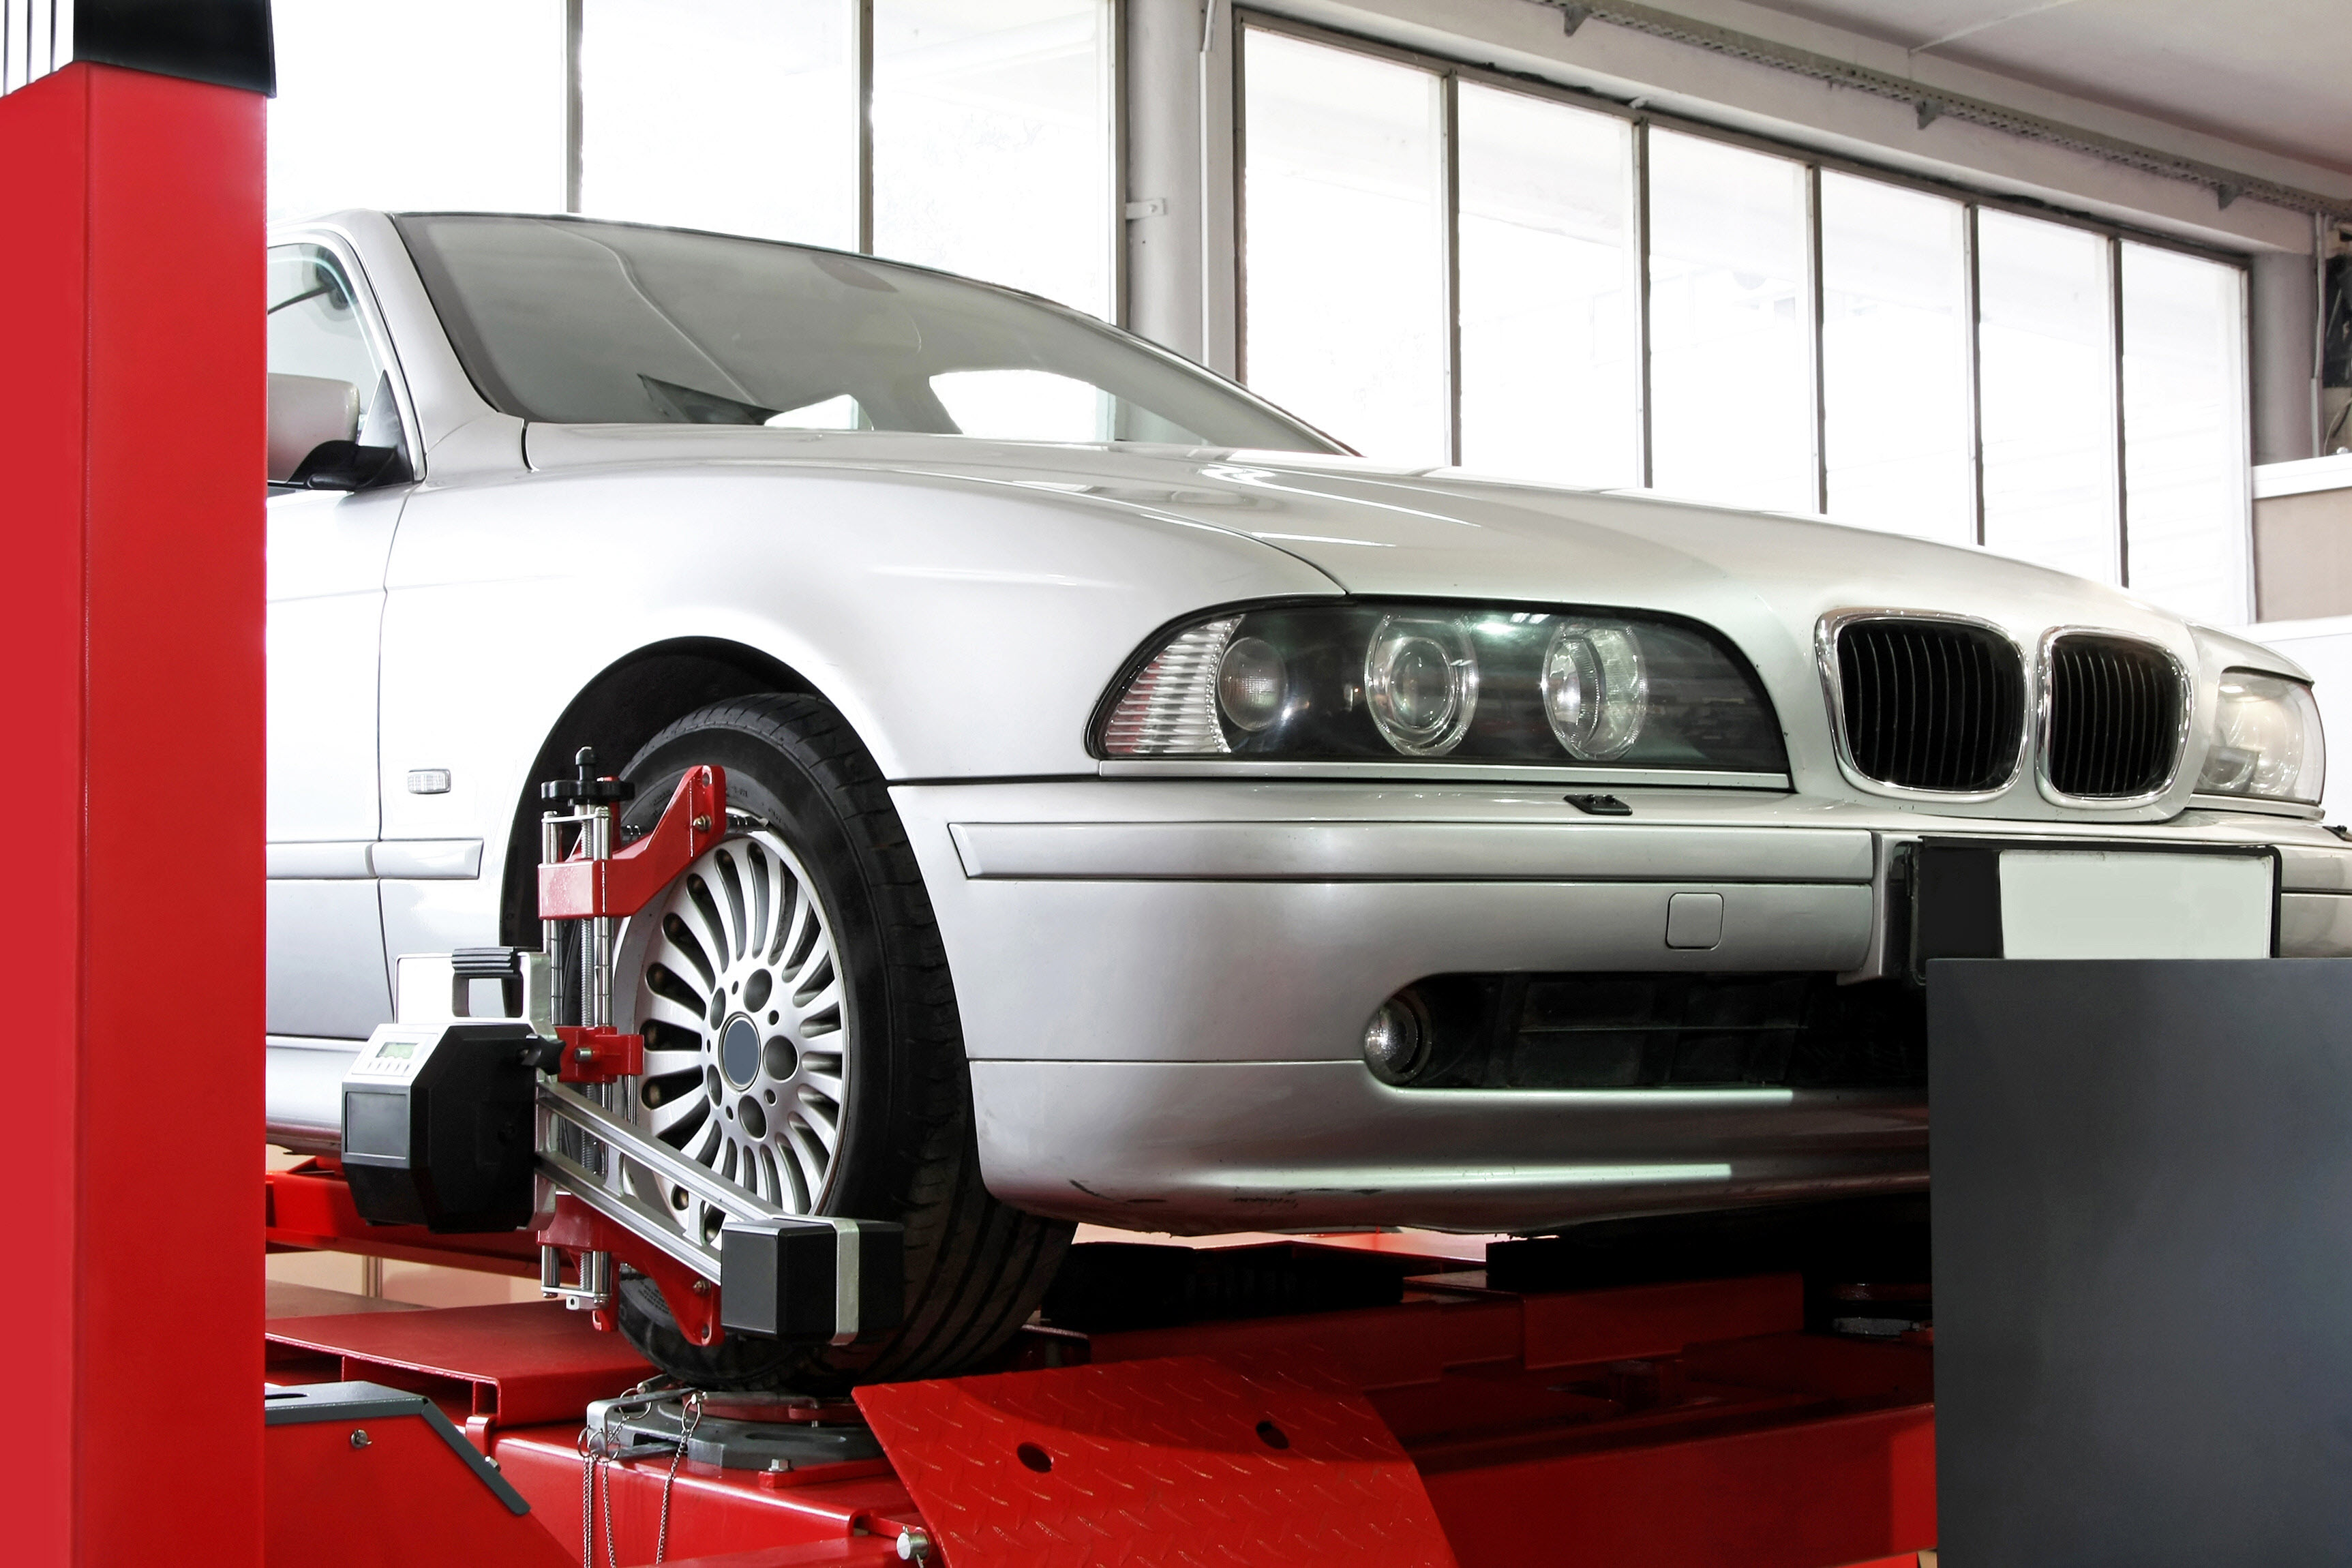 OEM recommended services are a huge source of dealer profits.